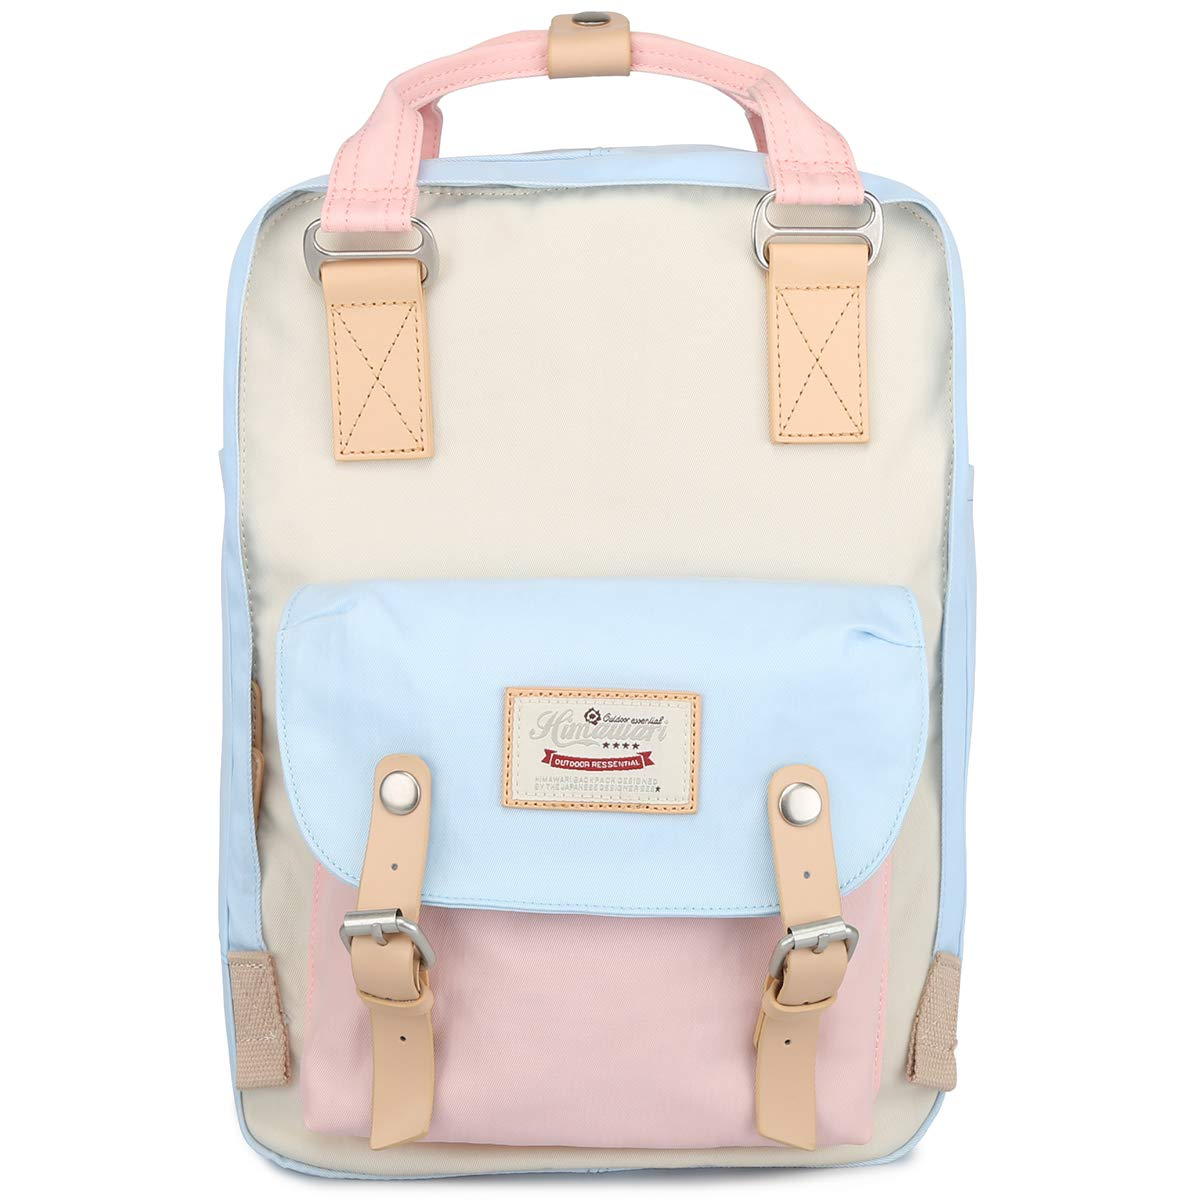 Himawari School Waterproof Backpack 15 Inch College Vintage Travel Bag for Women, 14 Inch Laptop Compartment for Student (HM-38#) by himawari